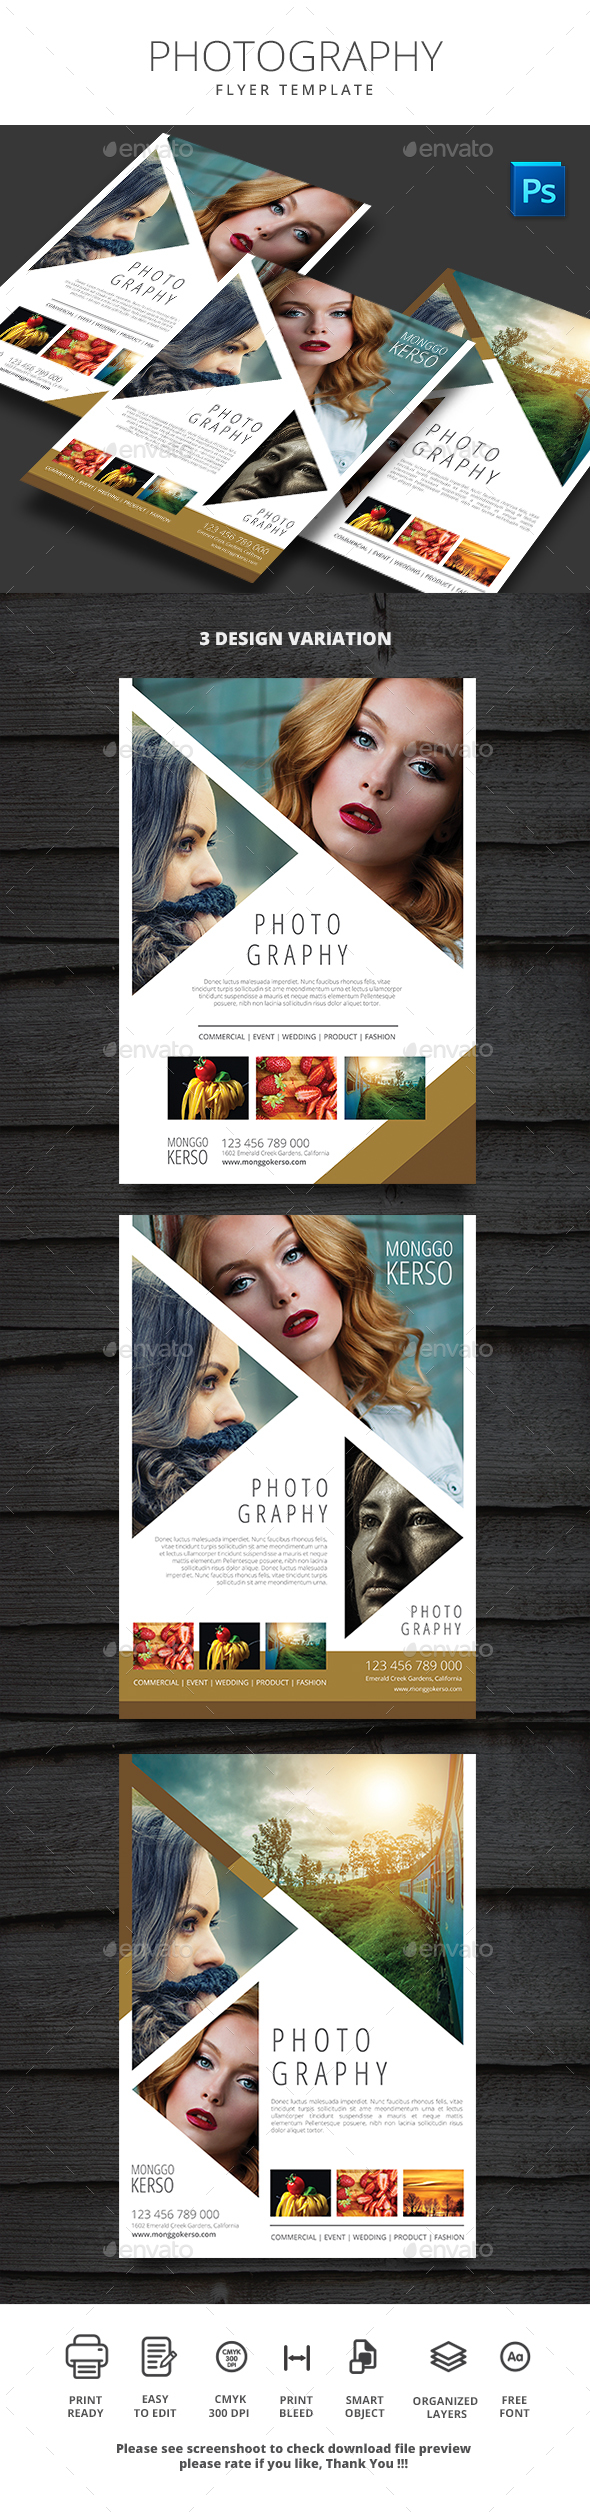 Photography - Flyers Print Templates